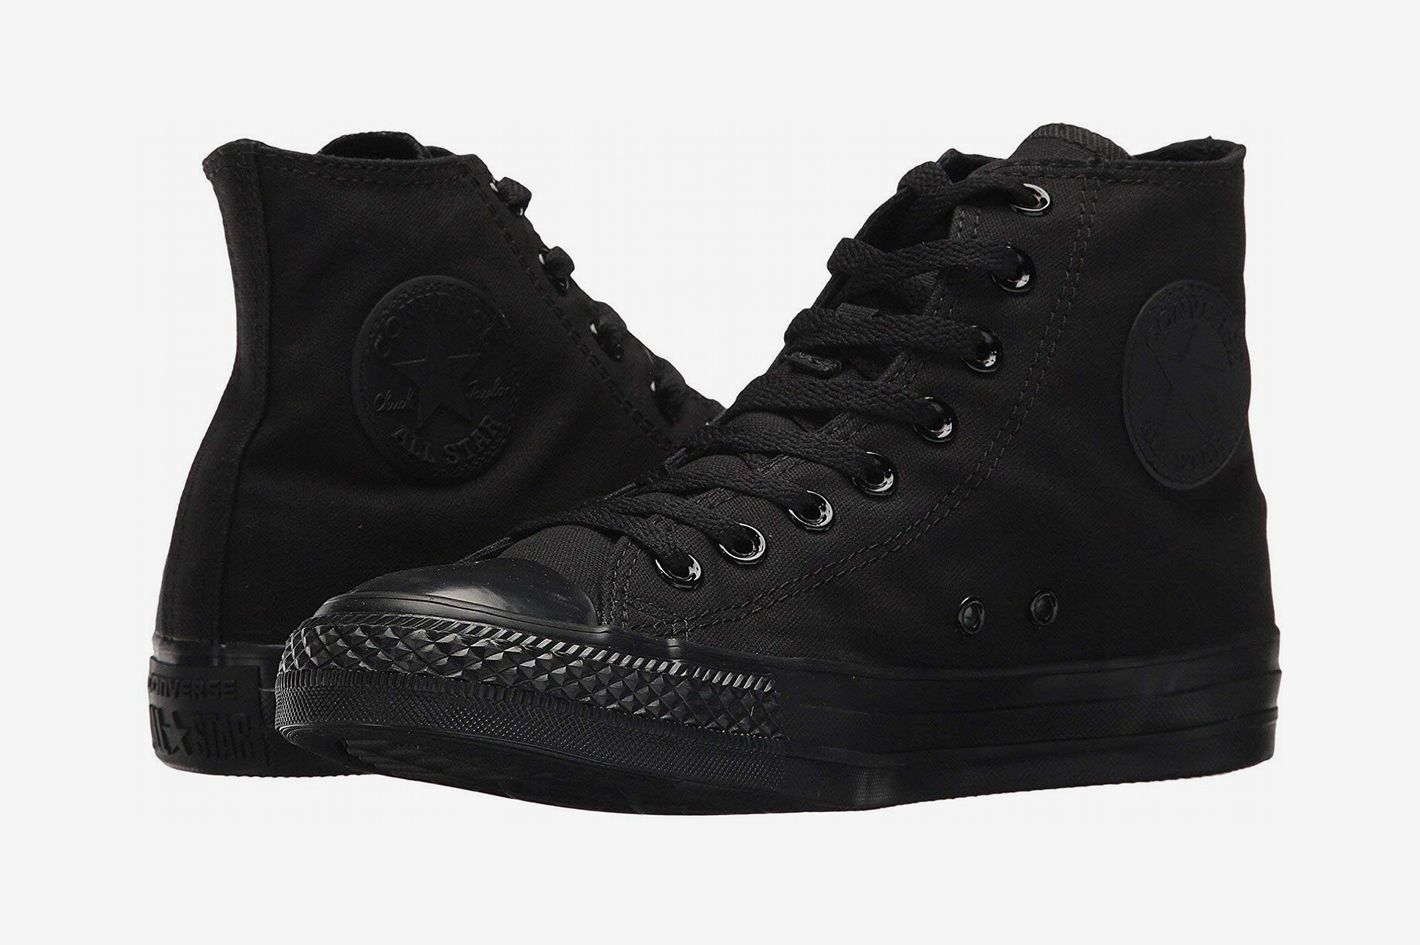 8522b59d48328b The Best Monochrome Black Sneakers. Converse Chuck Taylor All Star High Top  Sneaker